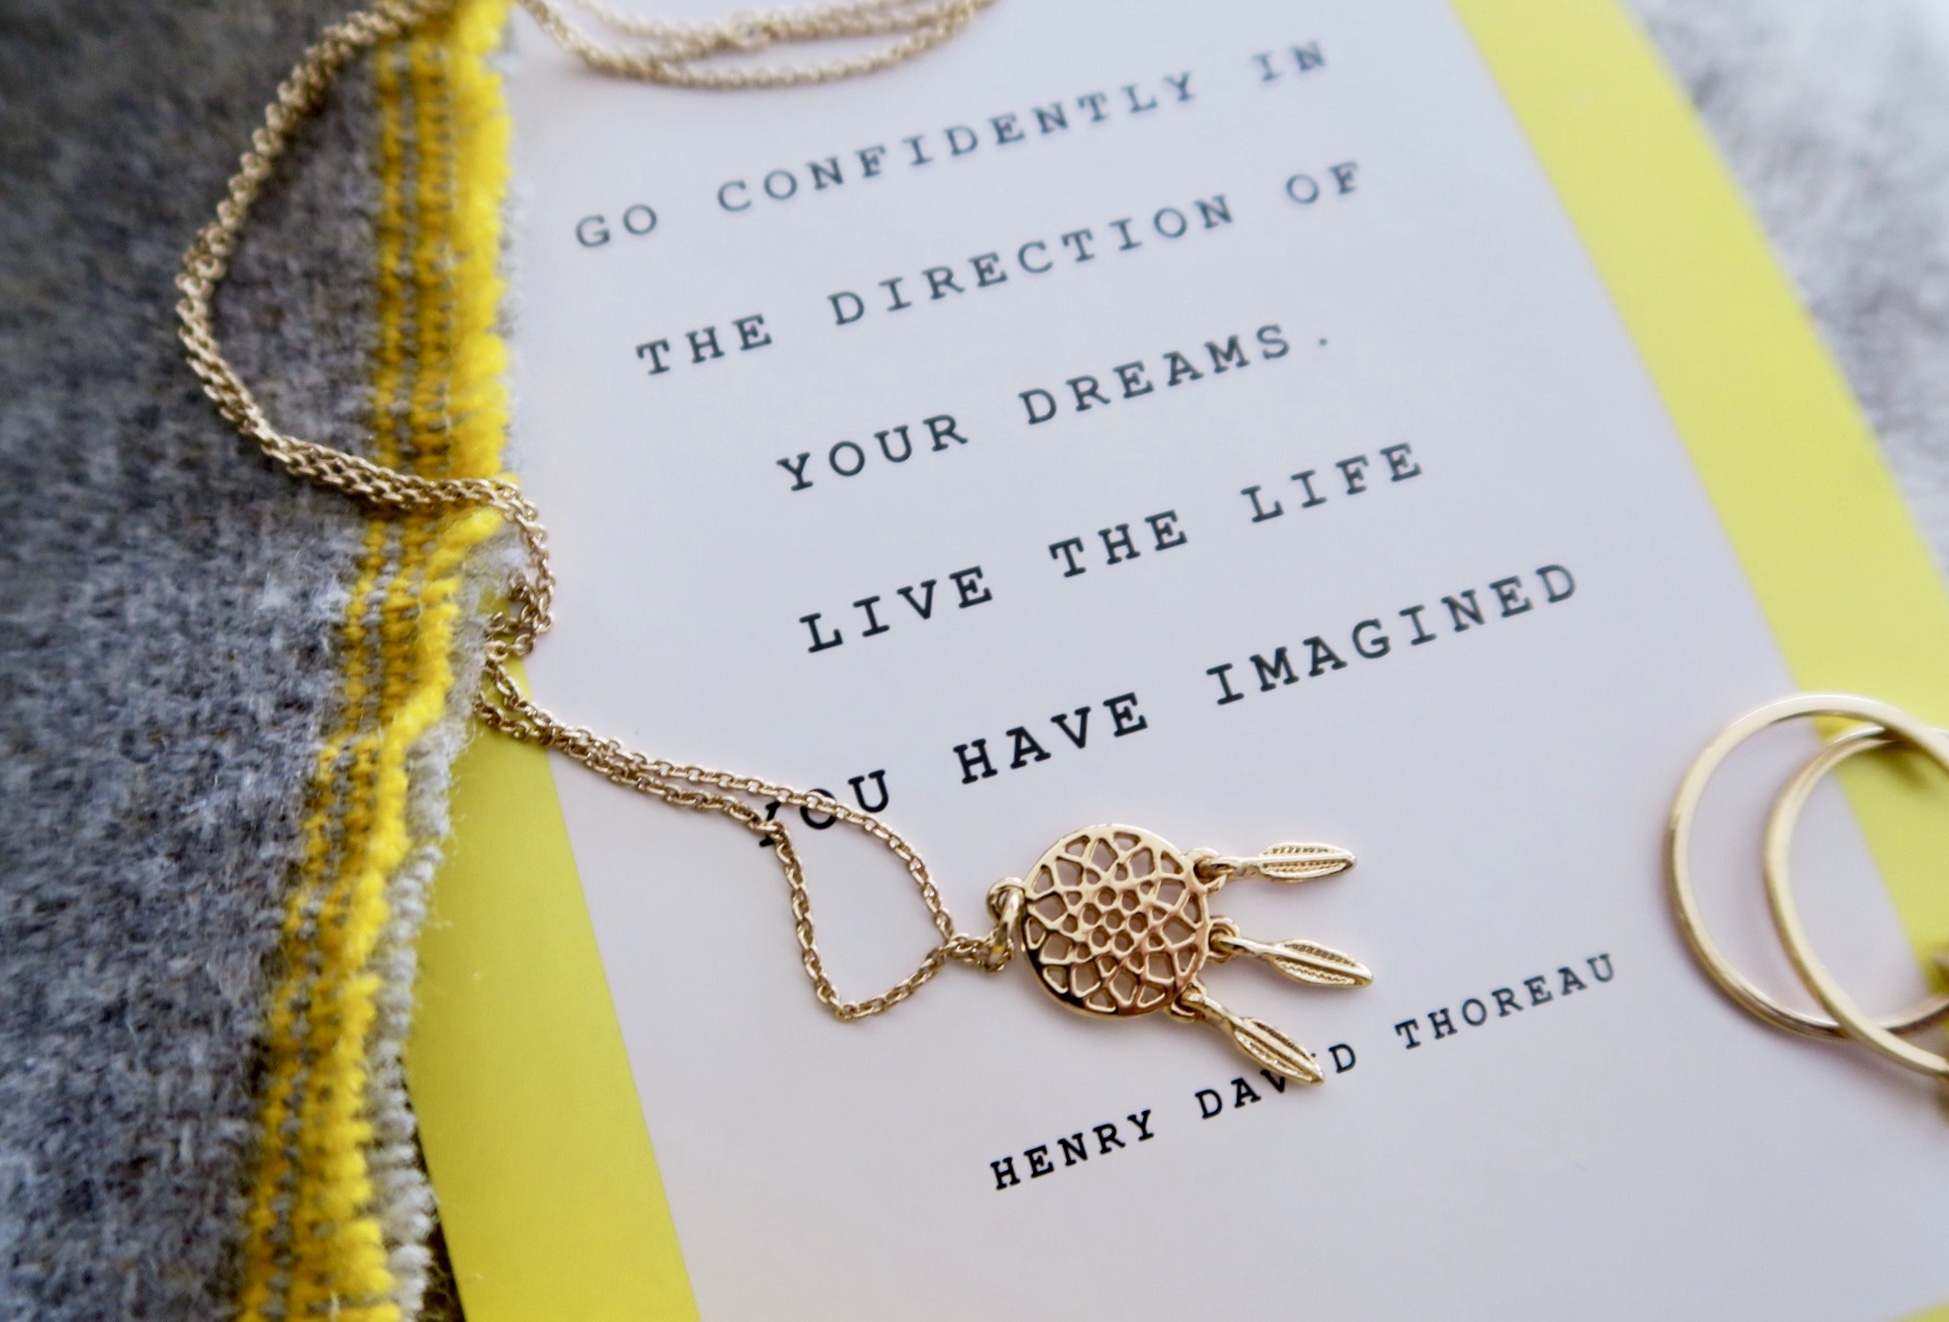 The 'feathers' of this dream catcher pendant move on wearing. £3.99 from H&M.